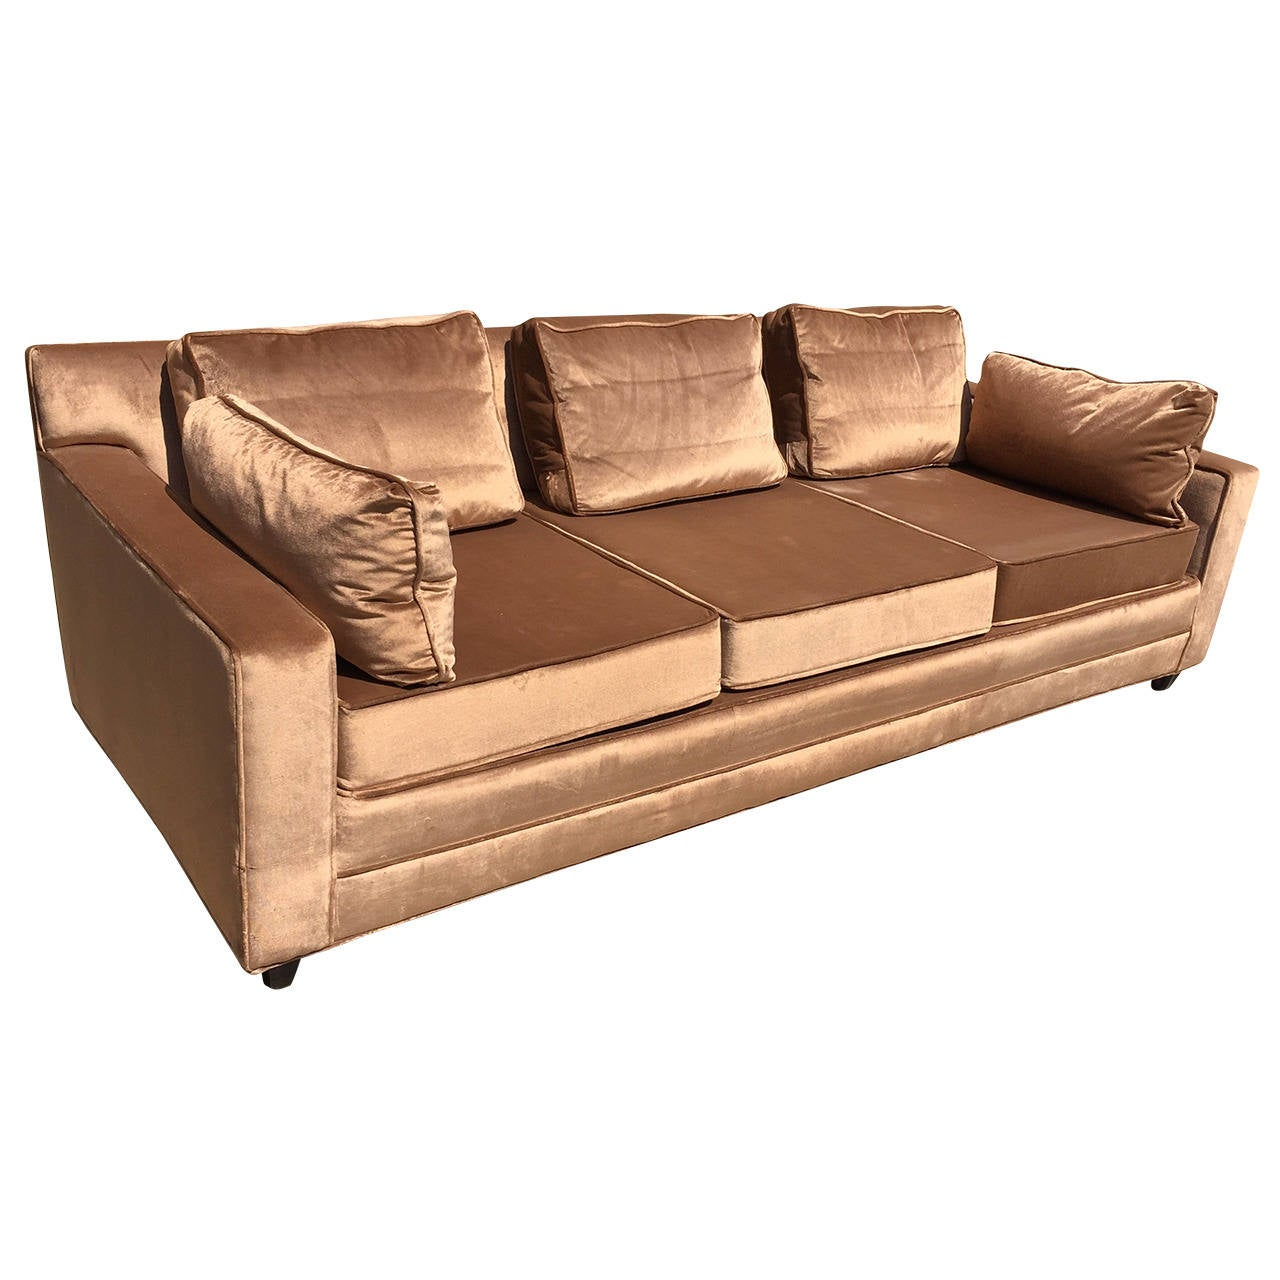 Dunbar Sofa by Edward Wormley For Sale at 1stdibs